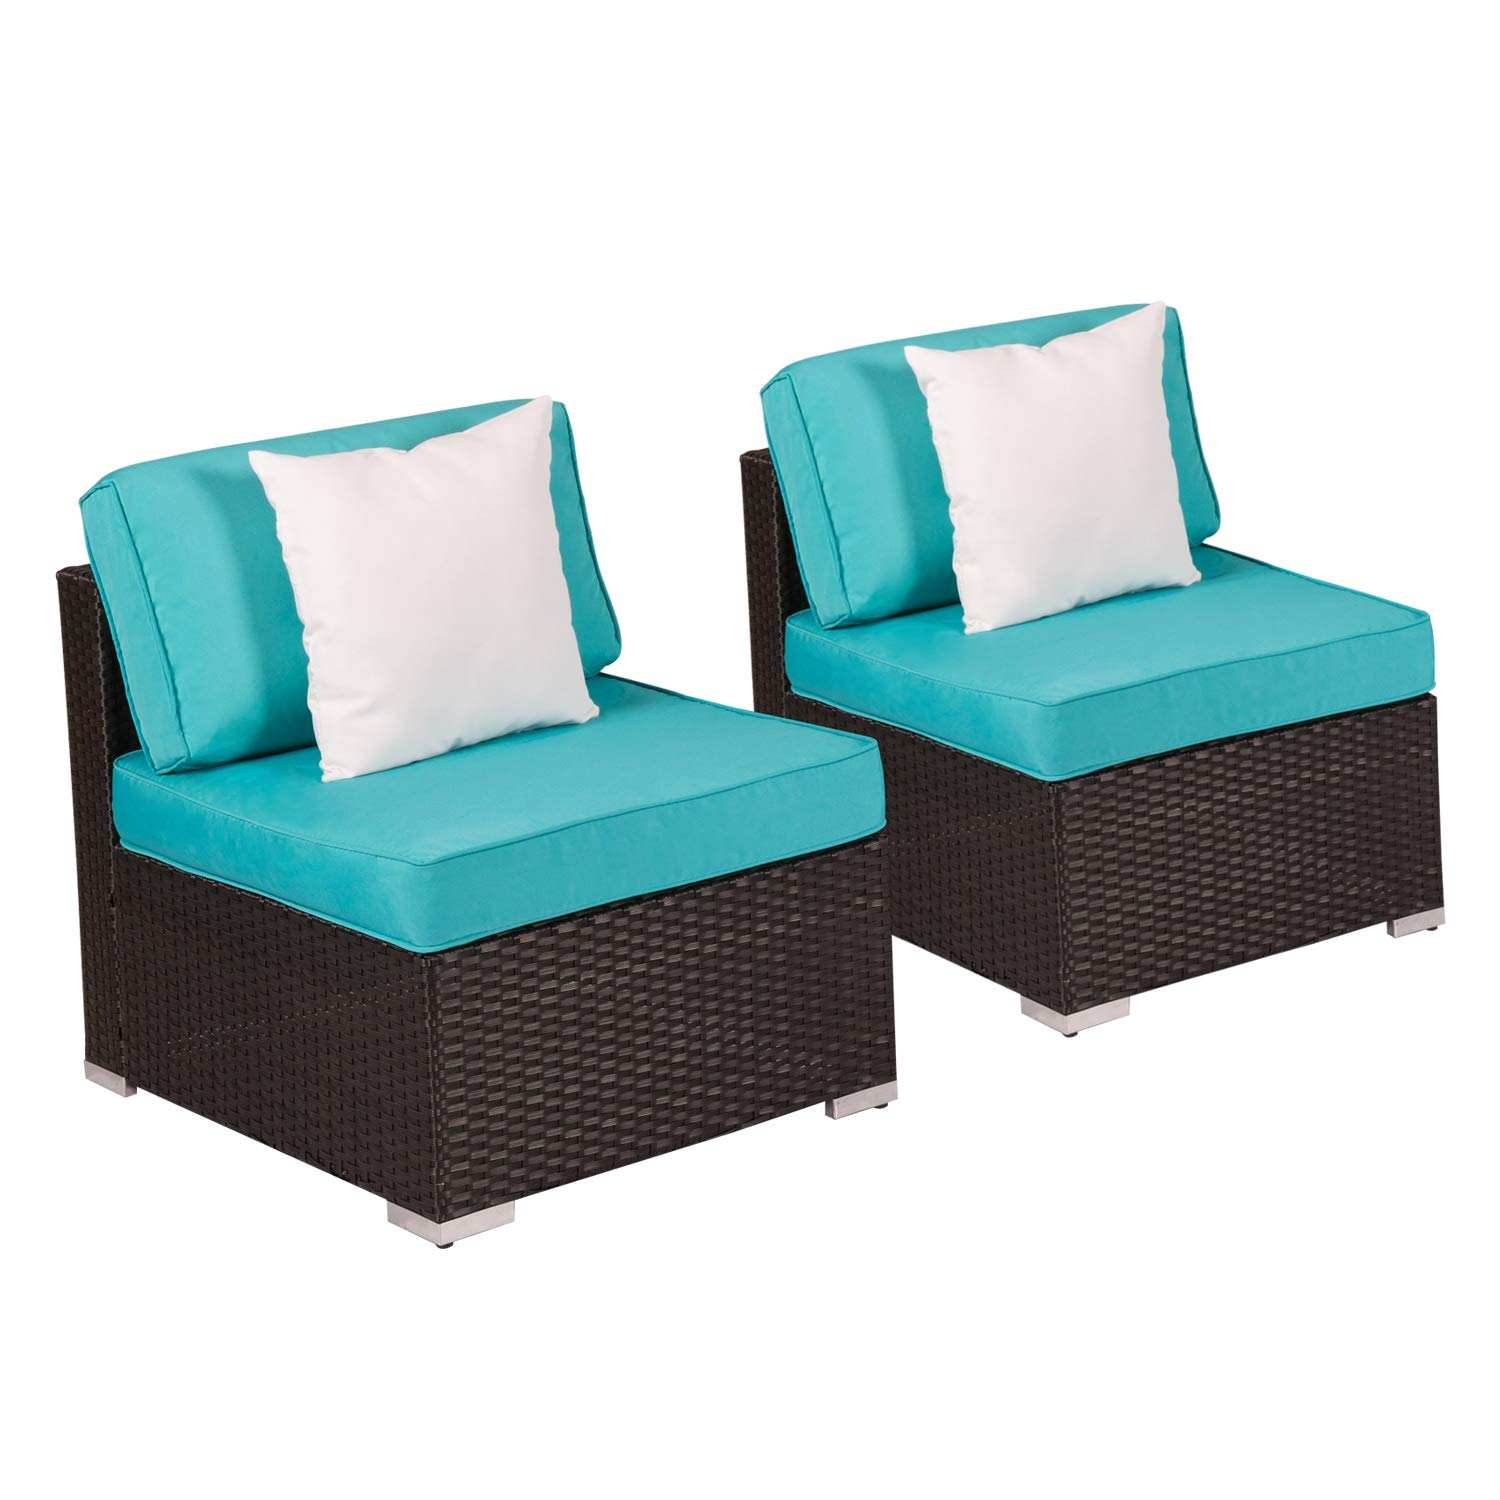 Kinbor 2 Piece Patio Backyard Furniture Sets All-Weather Rattan Sectional Sofa with Washable Couch Cushions (Loveseats Turquoise)